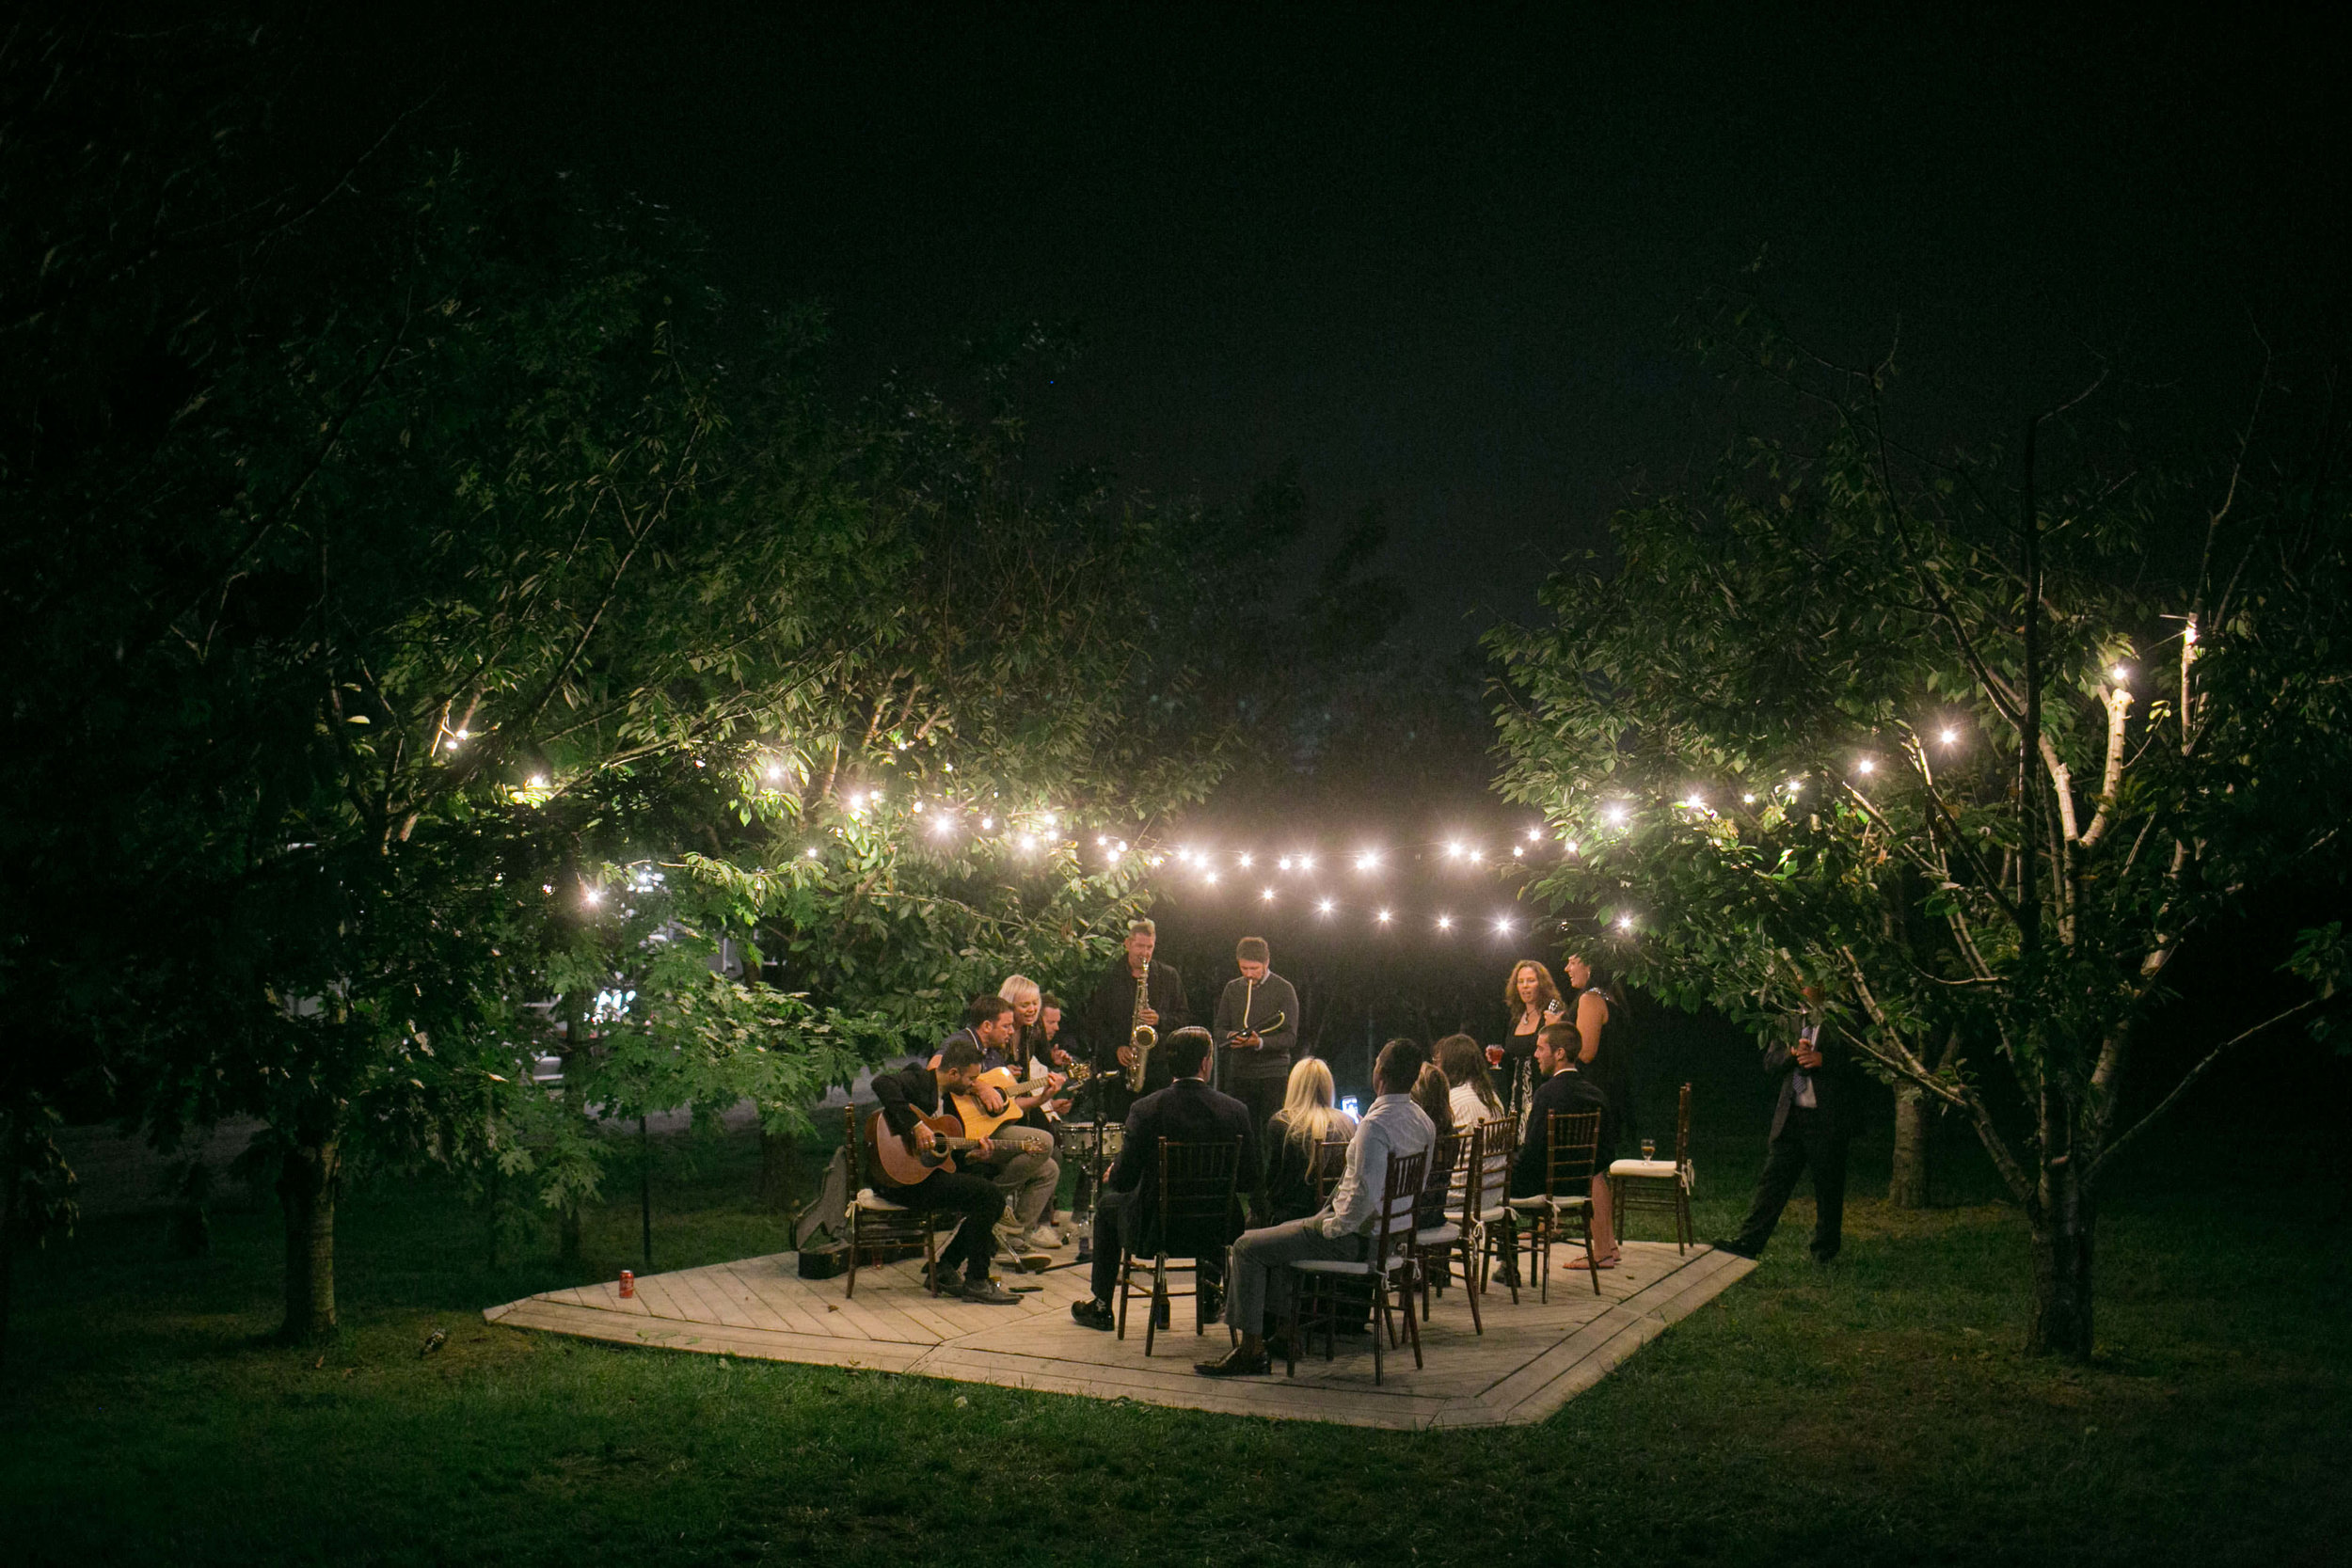 Ashley___Zac___Daniel_Ricci_Weddings___High_Res._Finals_696.jpg